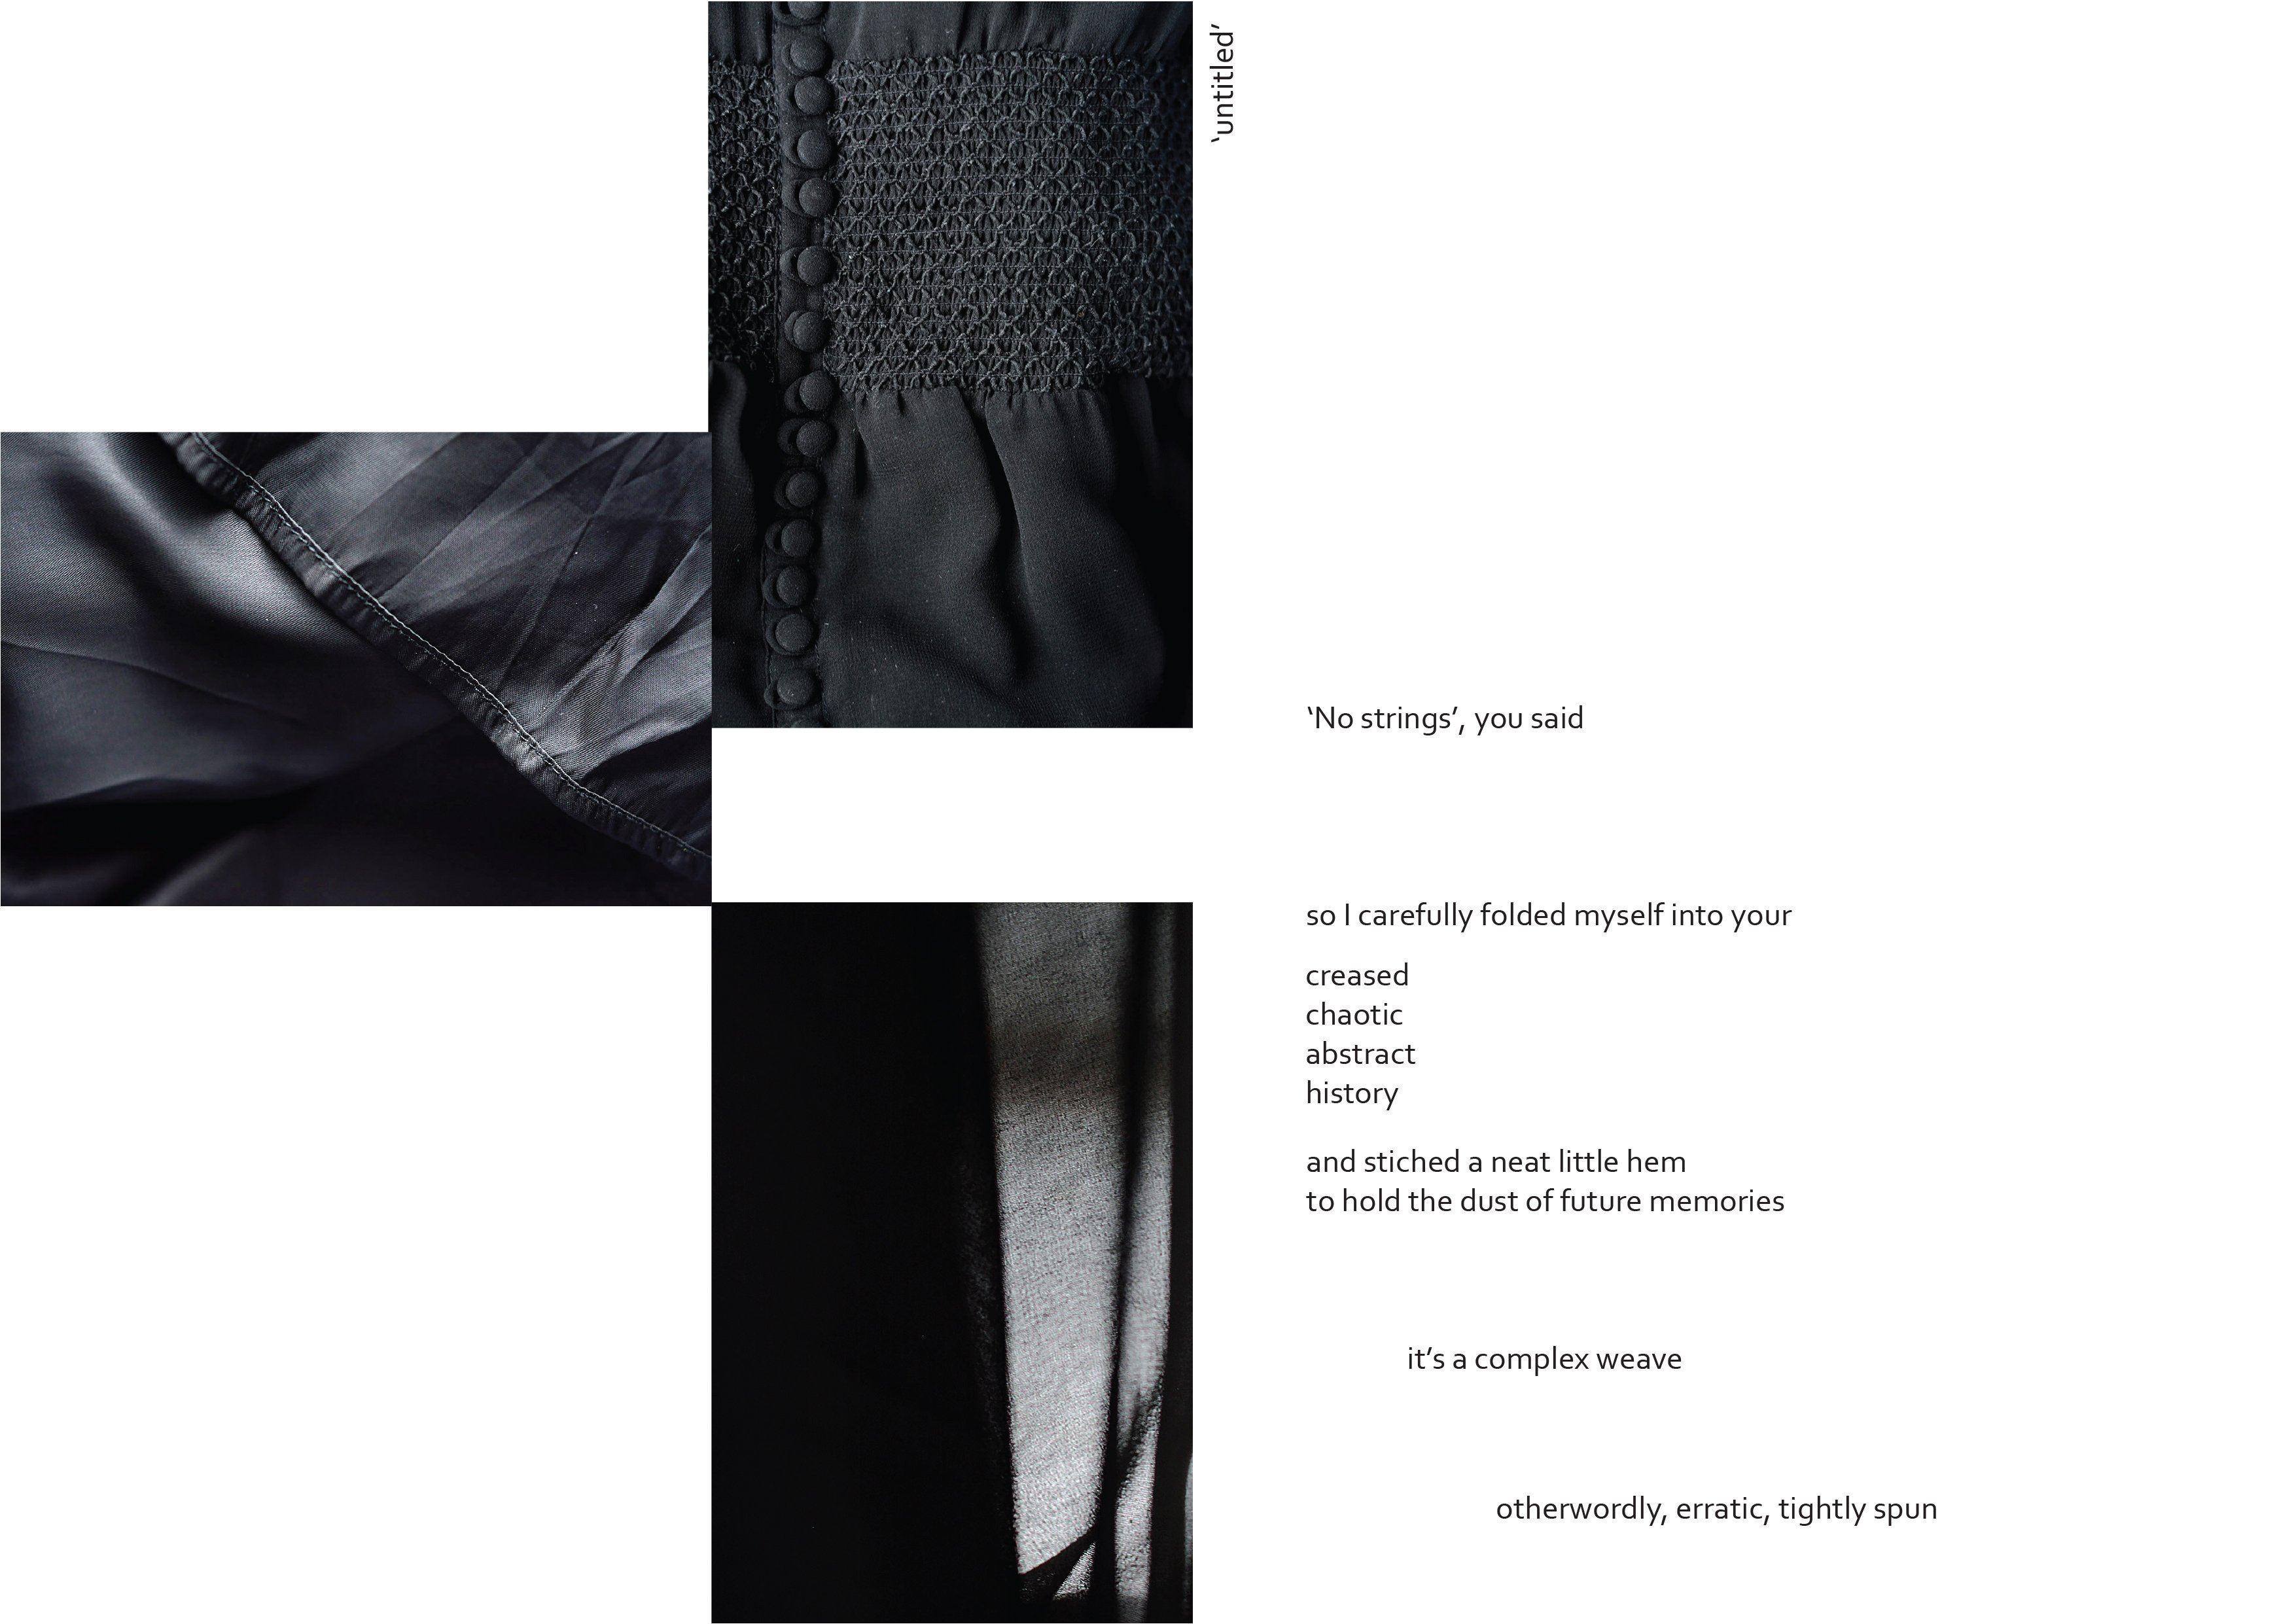 Black dress poem